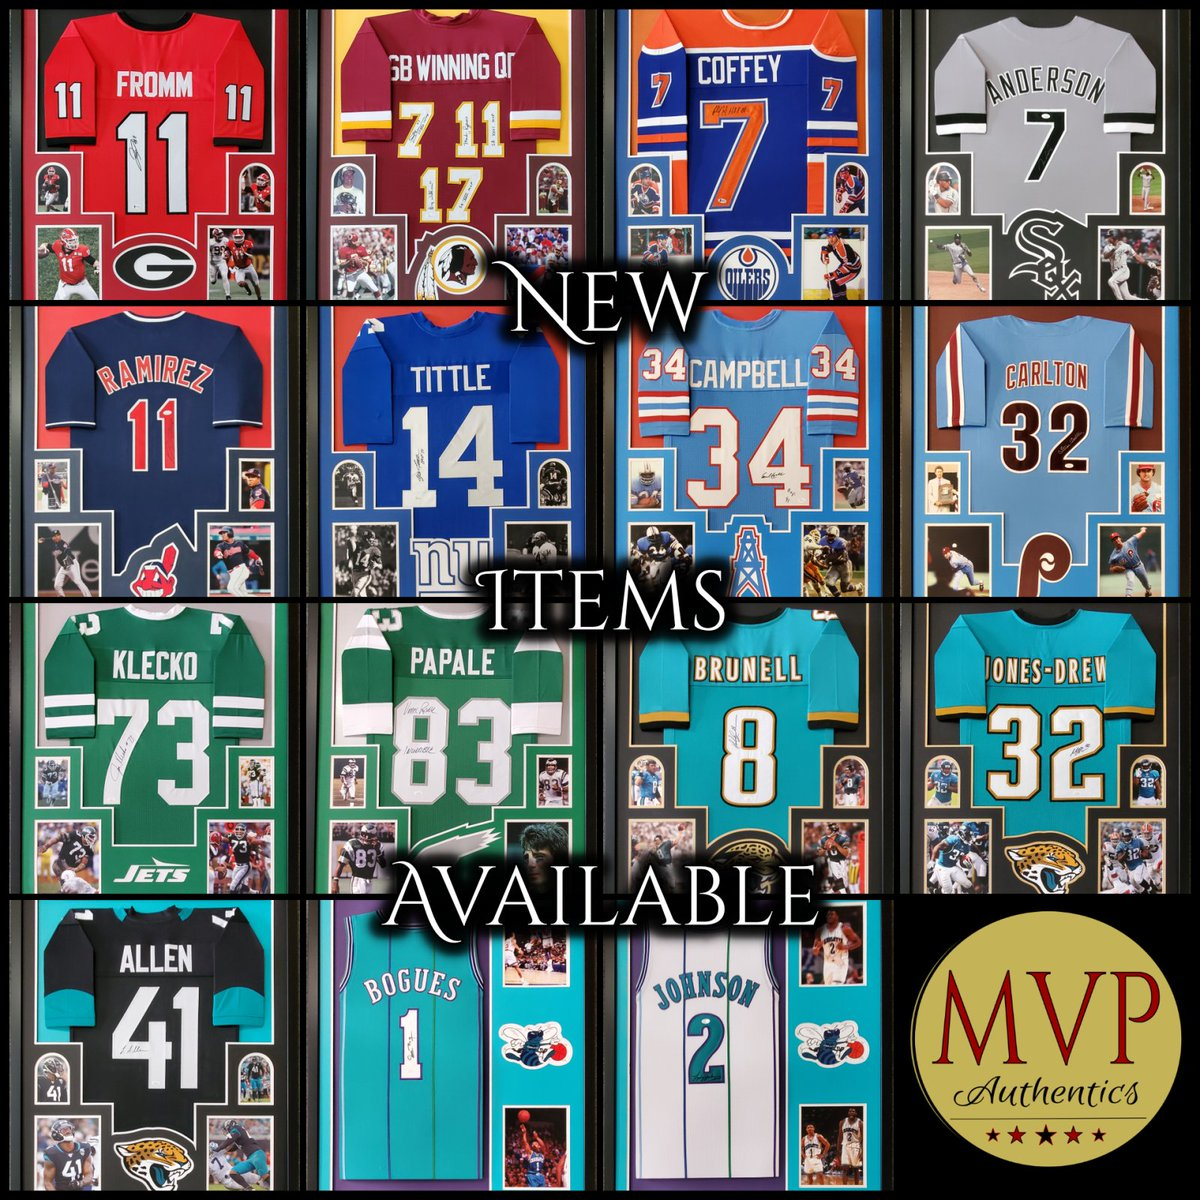 Our #CustomFraming is pretty awesome. New stuff hitting the store soon. #NFL #MLB #NBA #NHL #Sports Memorabilia #Framing #SportsCollectibles https://t.co/1DWbWagjuw